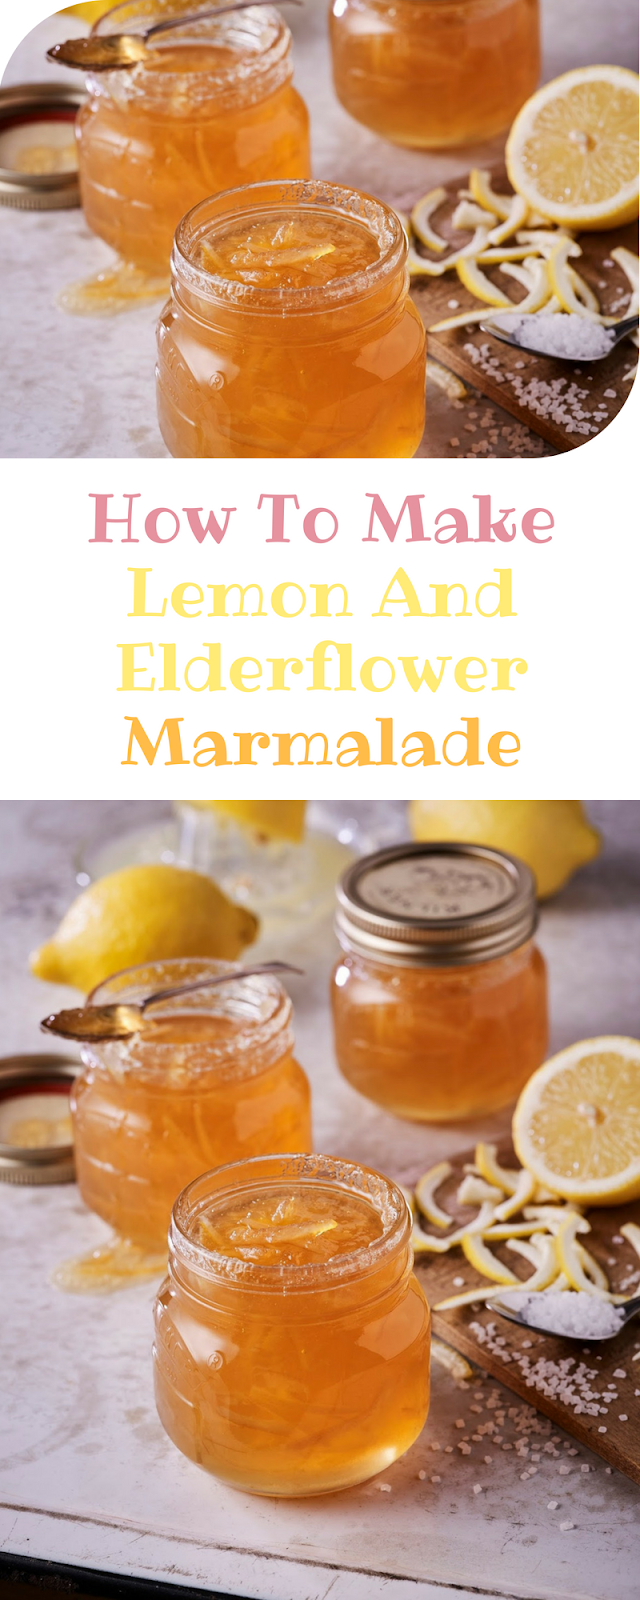 Lemon And Elderflower Marmalade